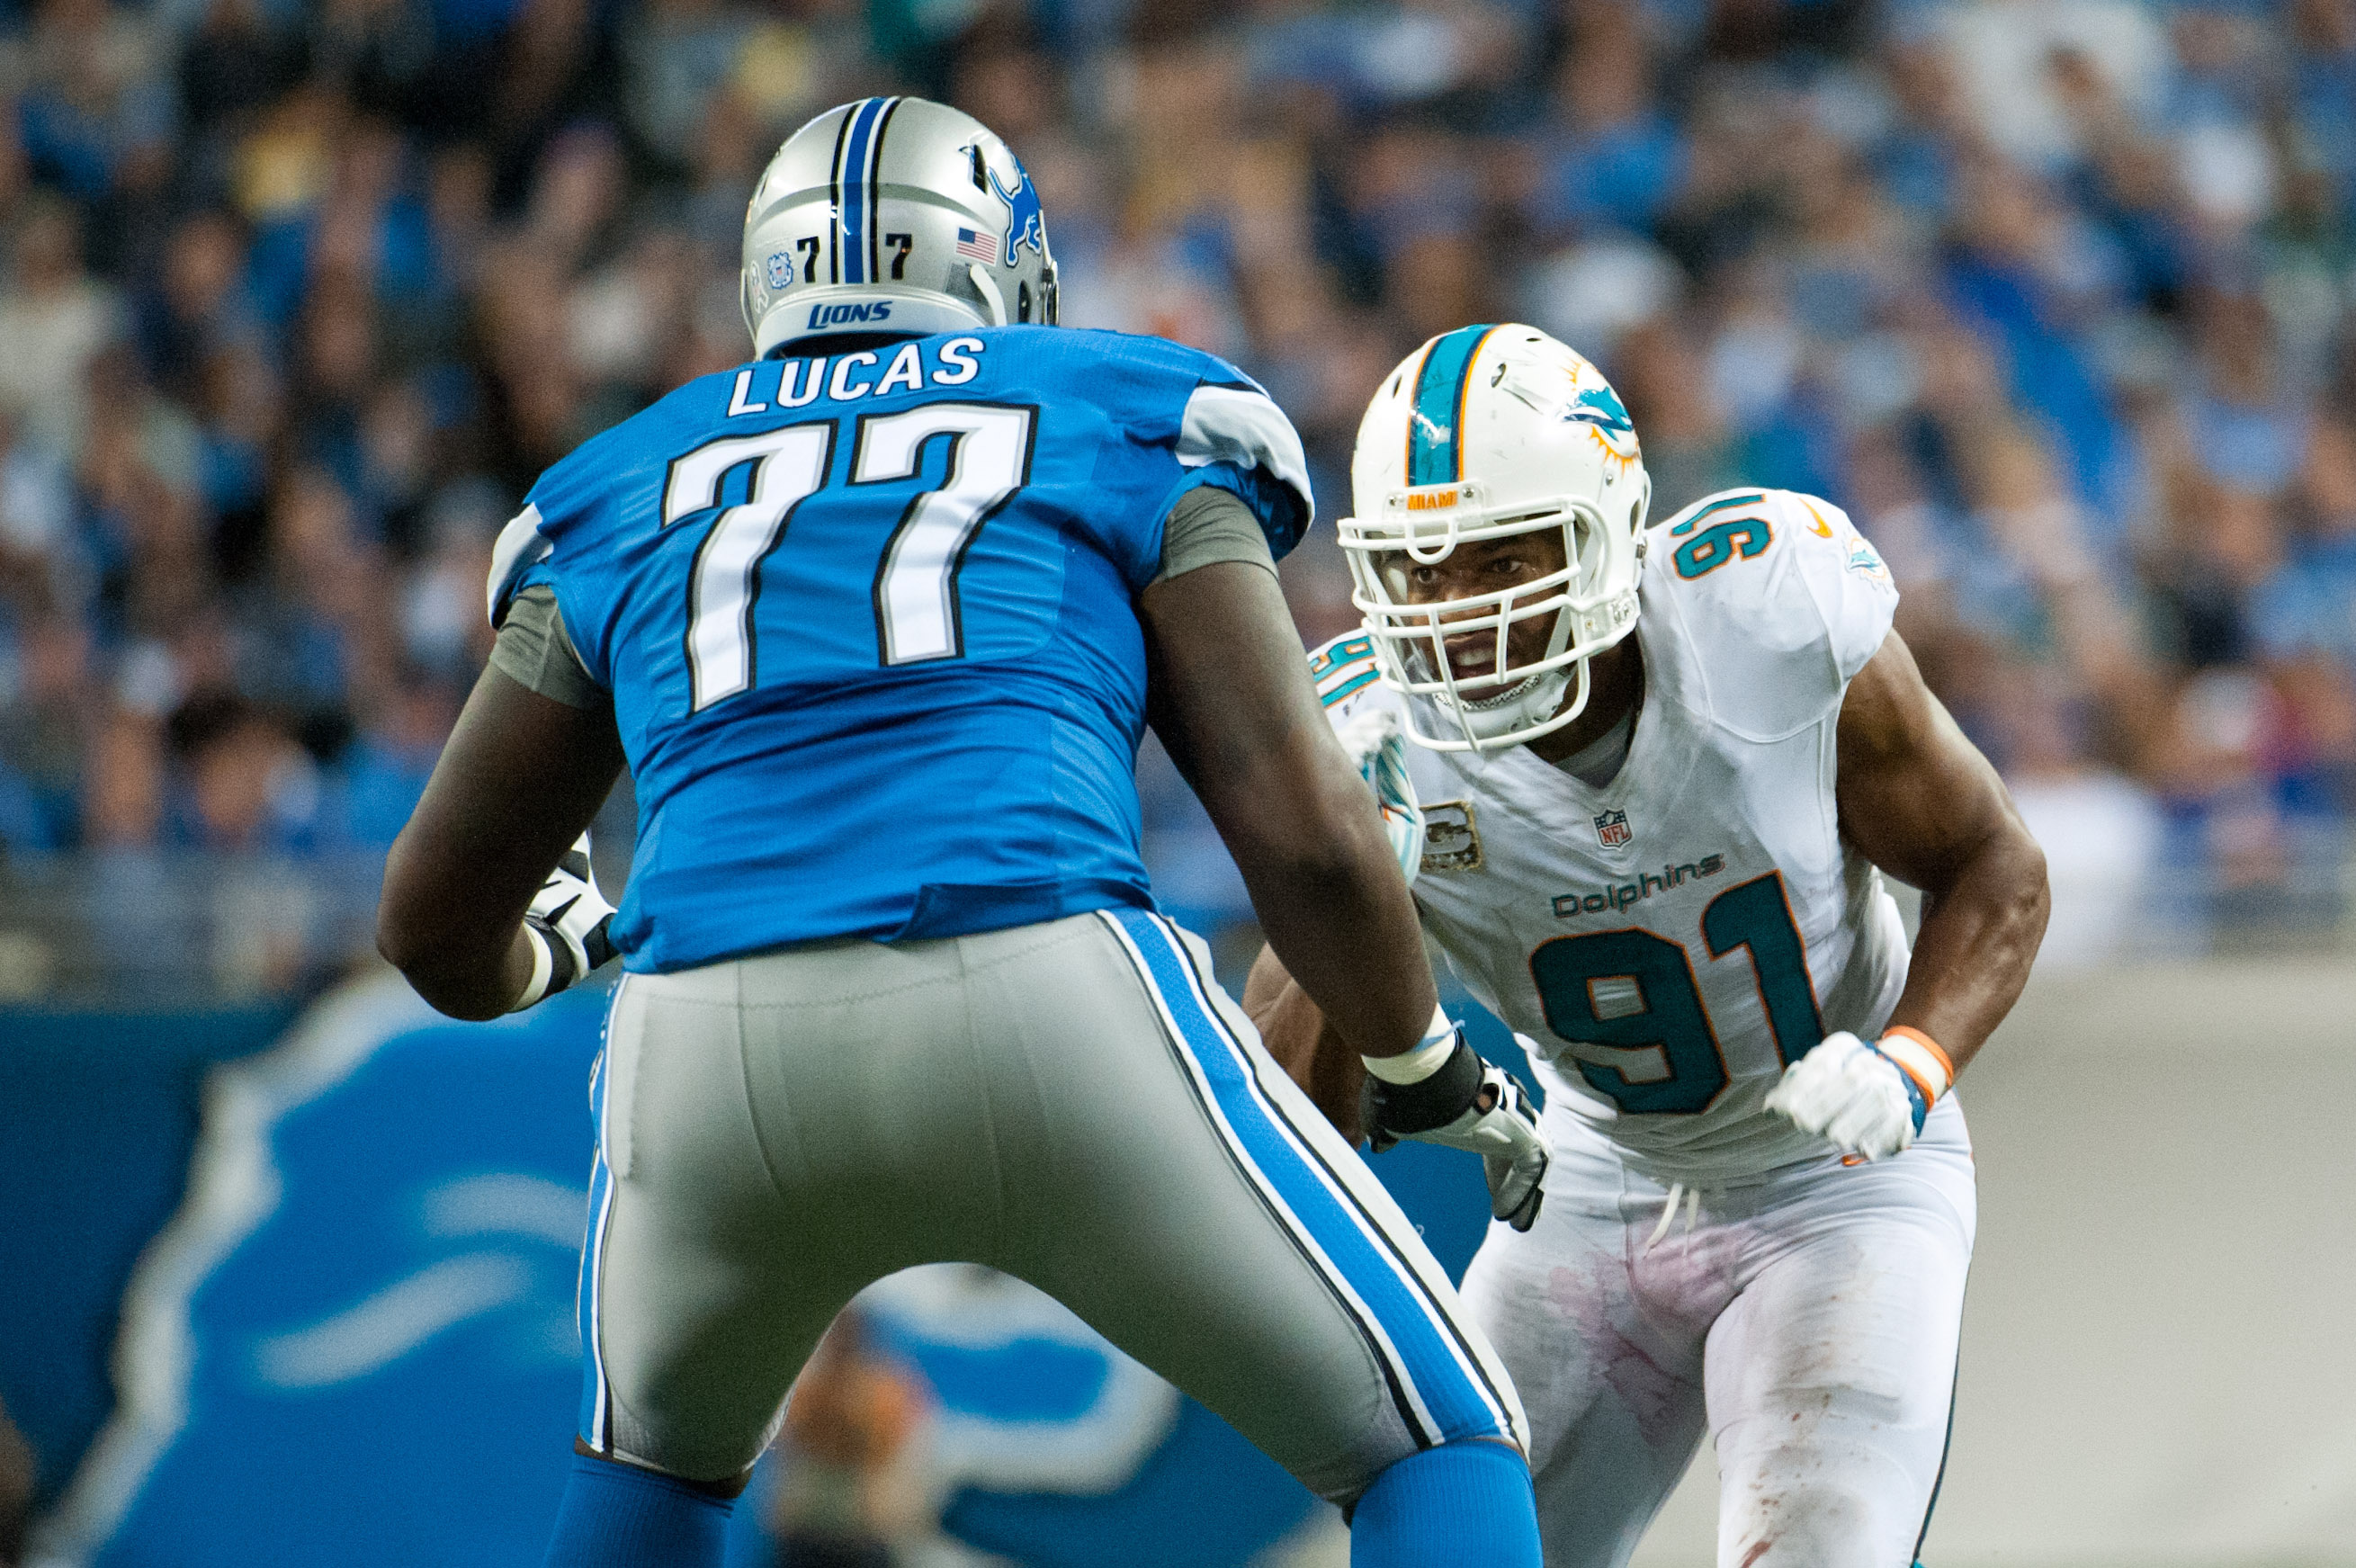 Corenlius Lucas made his second start of the season Sunday, this time at right tackle.